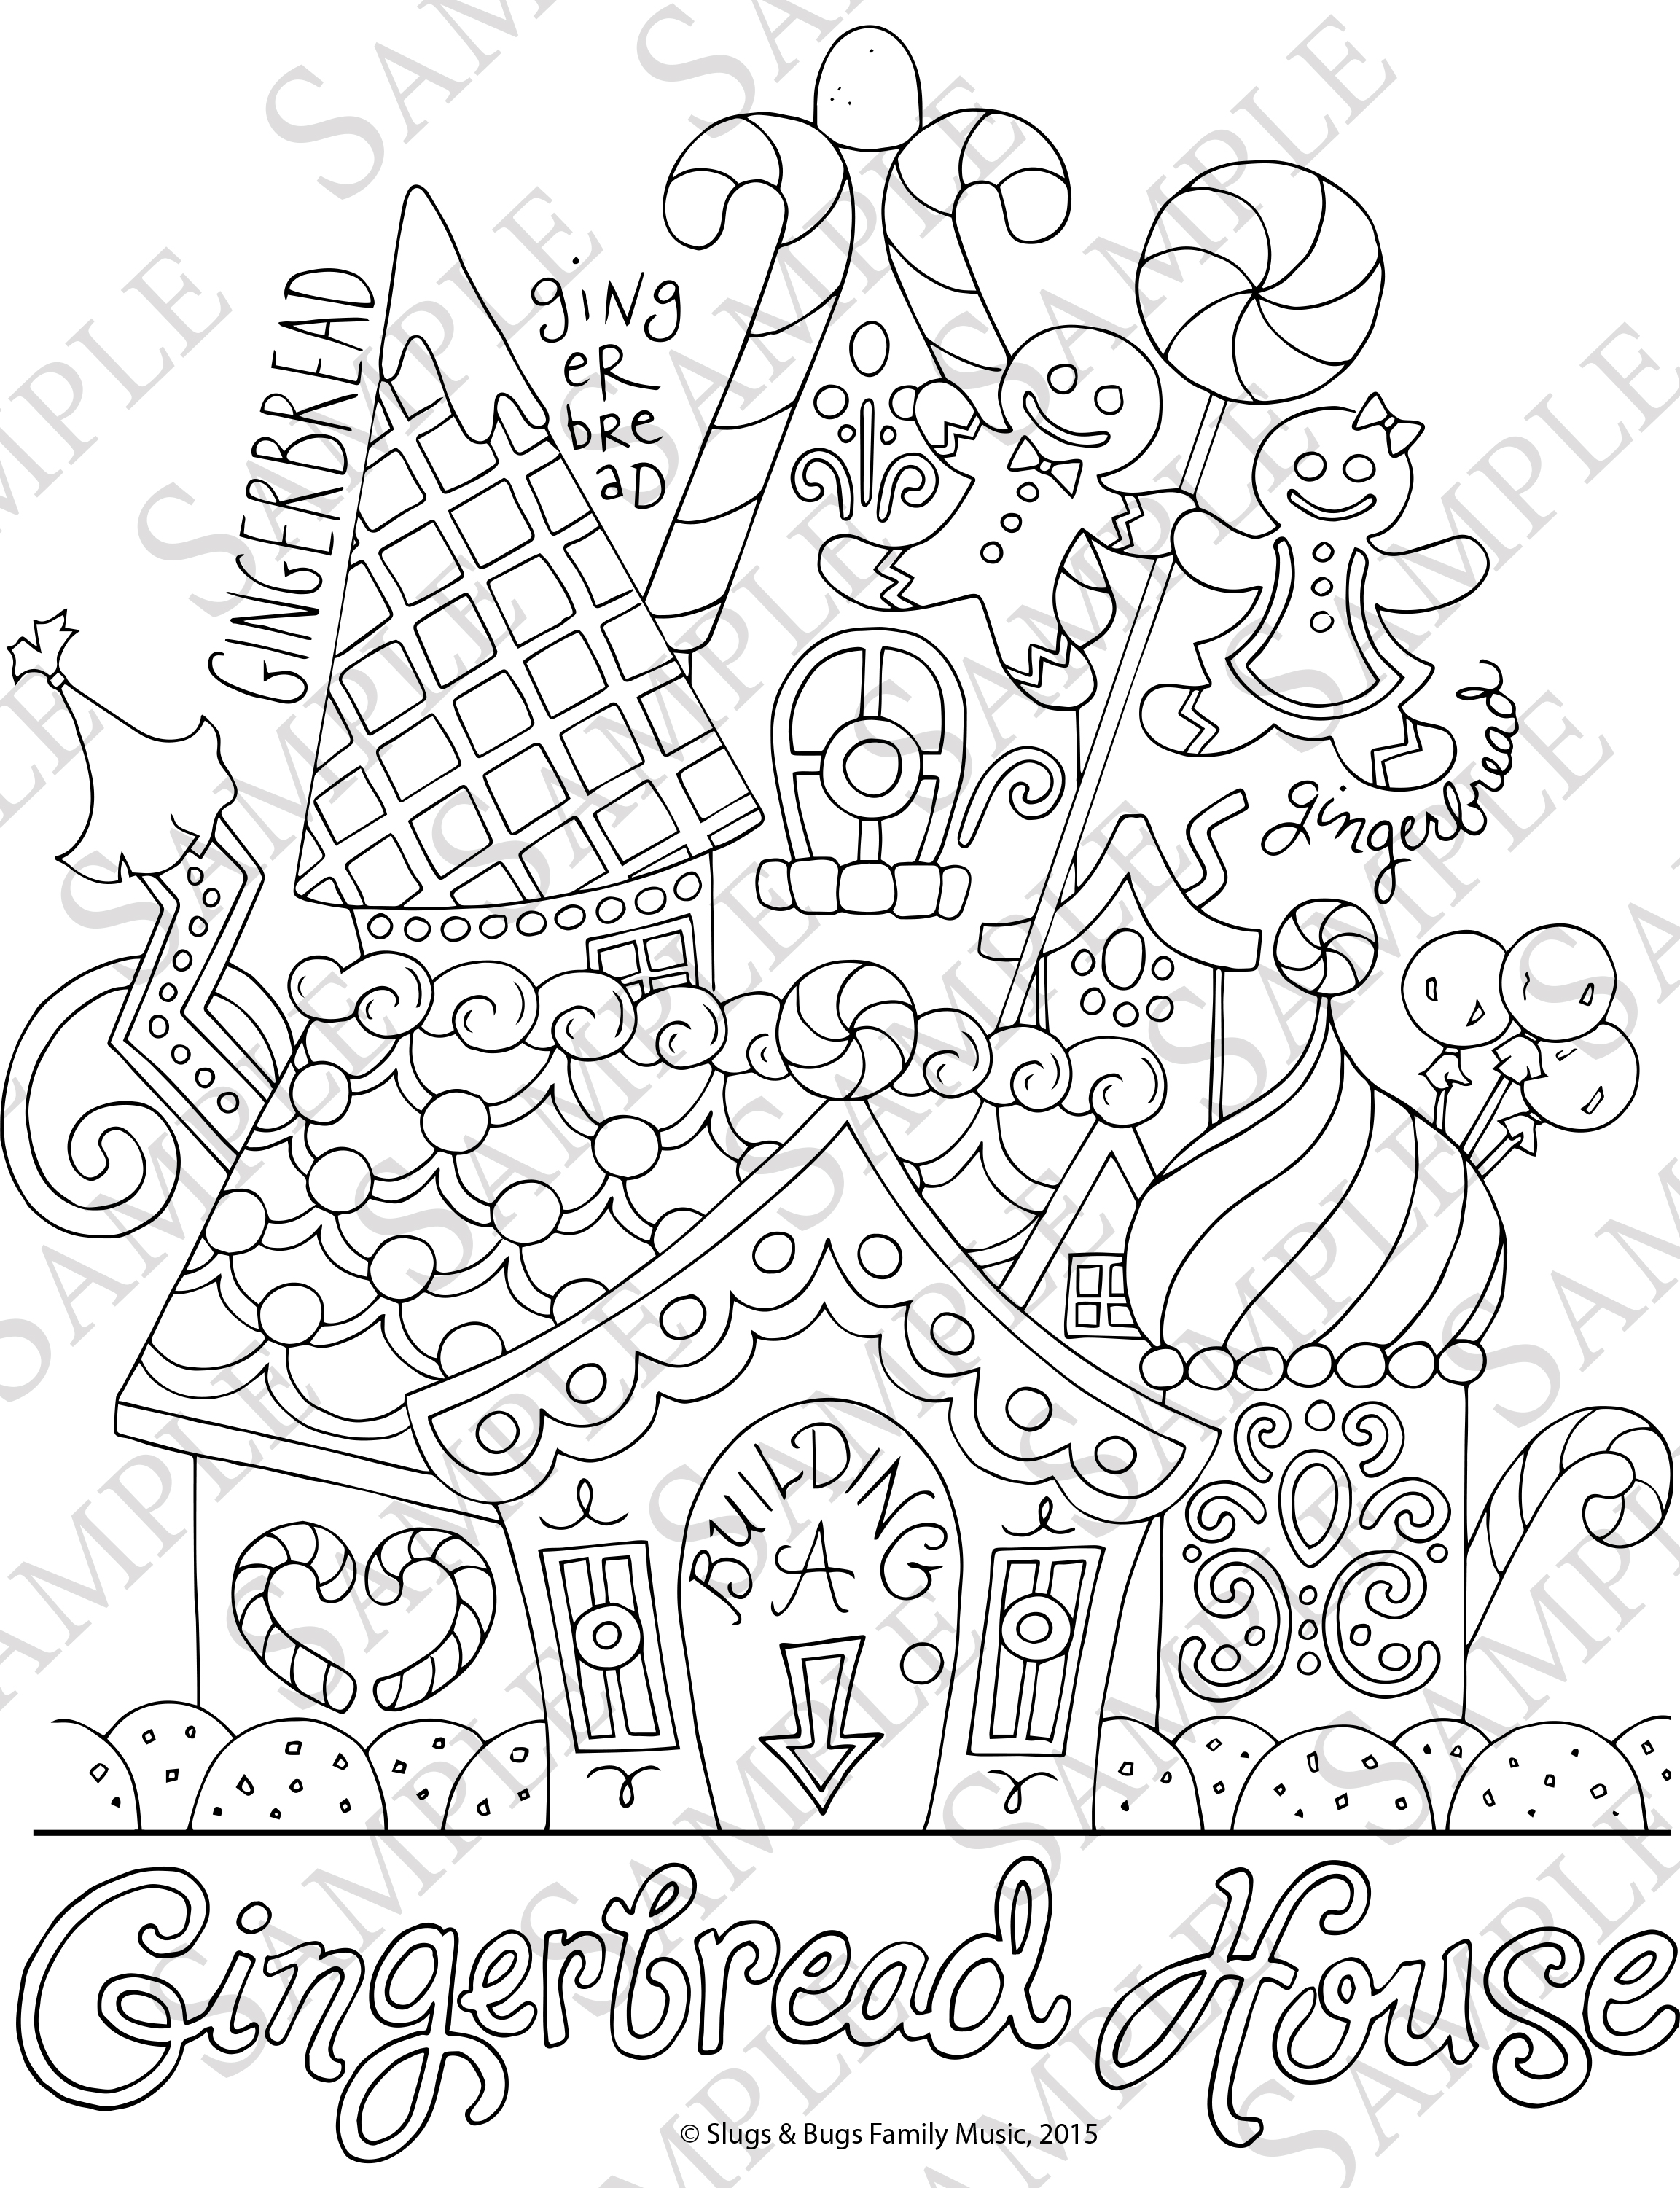 Gingerbread House Coloring Pages Good Detailed Gingerbread House